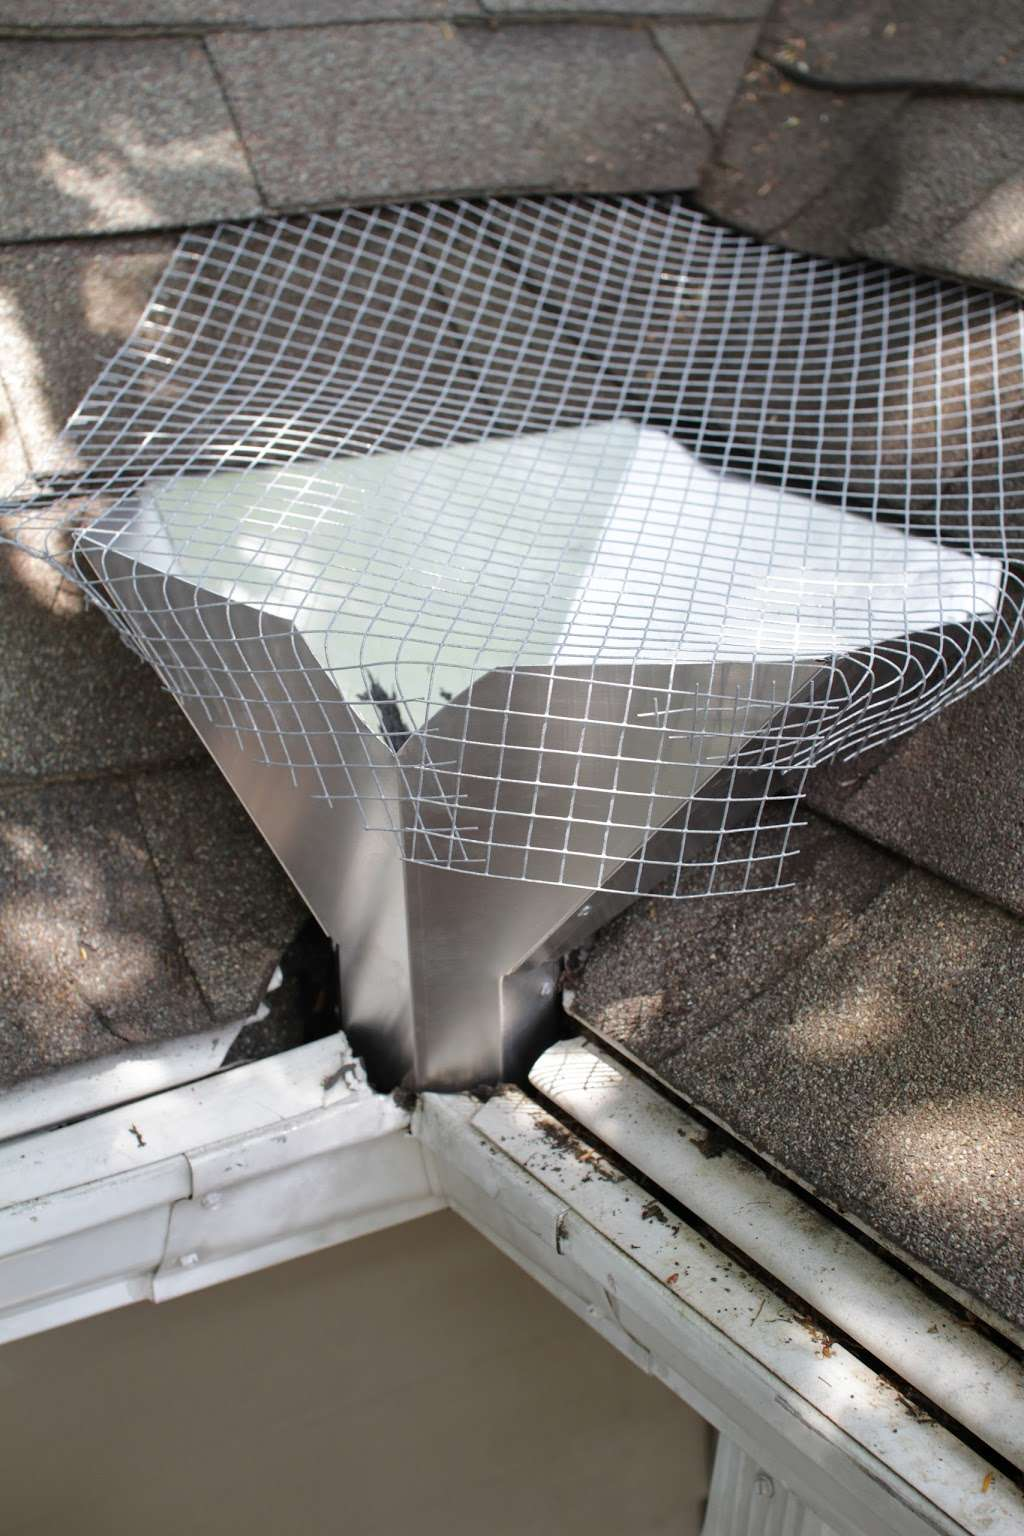 Roof Valley Rain Water Diverter by Advanced Roofing Solutions - roofing contractor  | Photo 3 of 7 | Address: 19 E E Centre St, Nutley, NJ 07110, USA | Phone: (973) 873-0609